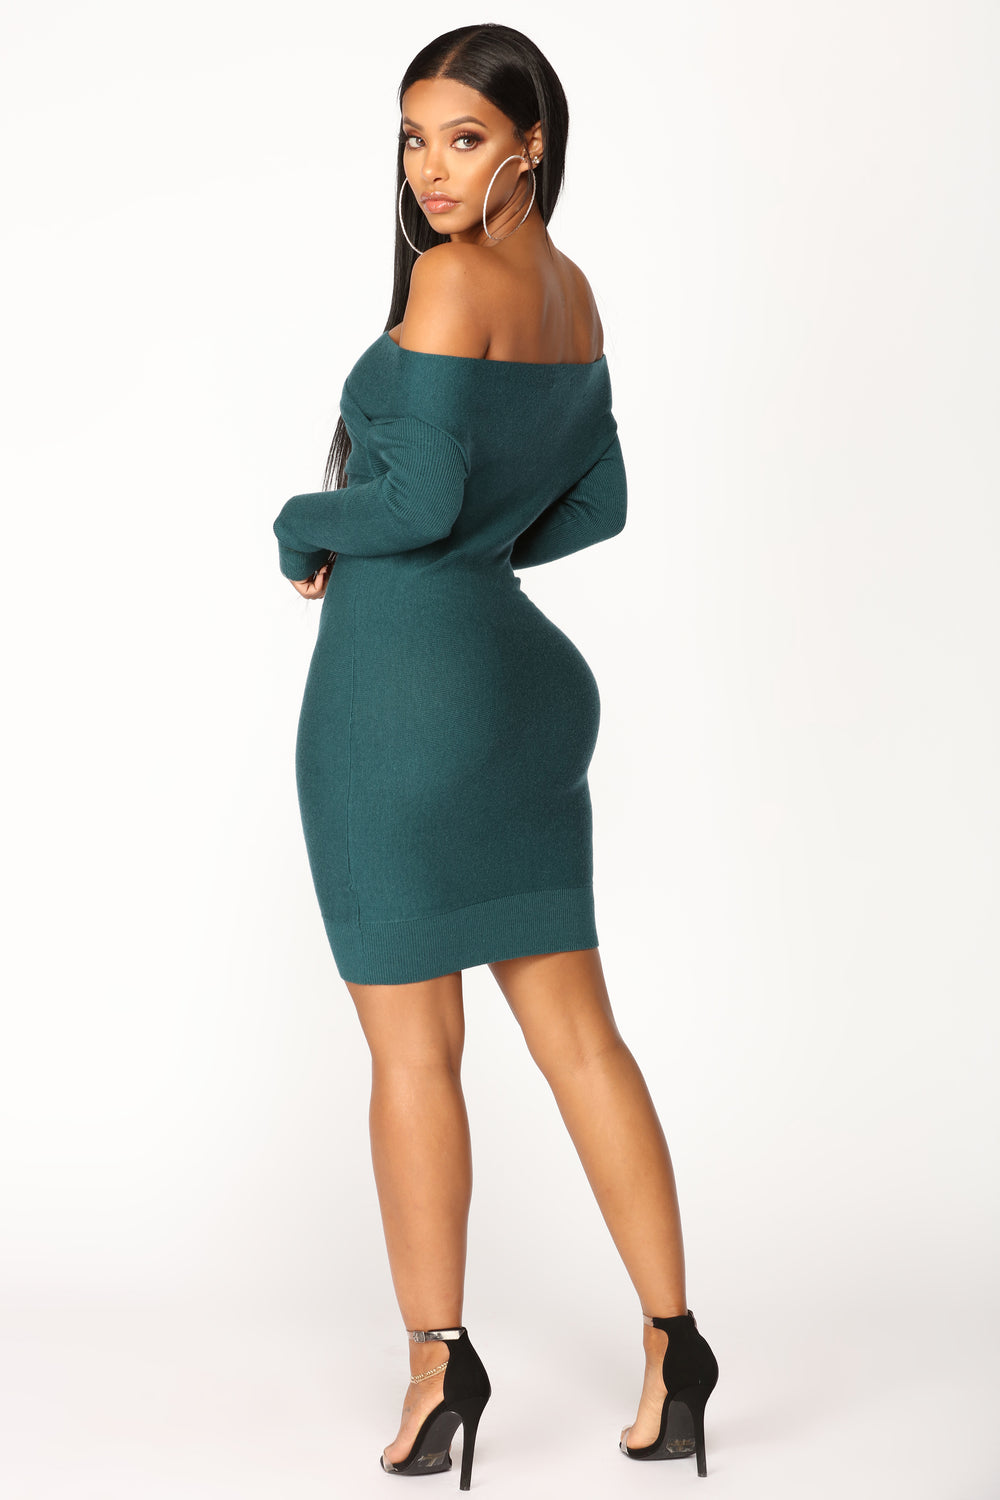 Off Shoulder Show Dress - Hunter Green